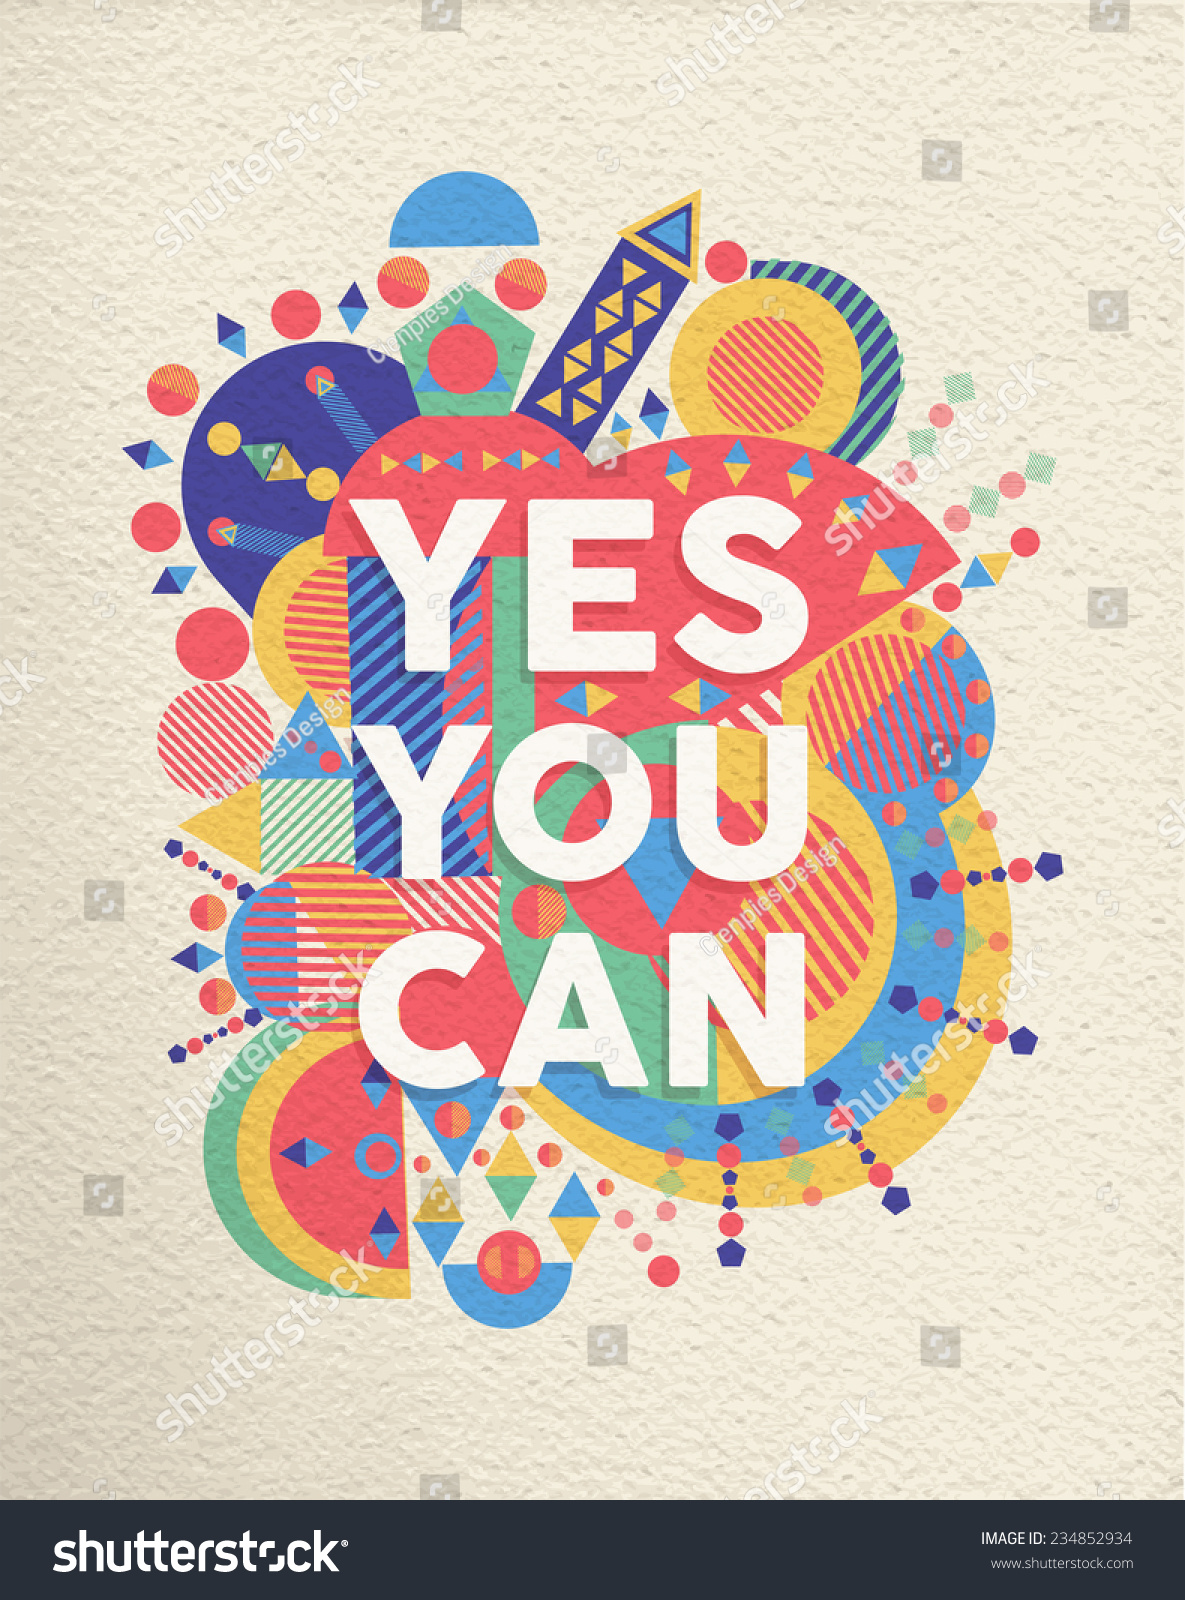 Poster design quotation - Yes You Can Colorful Typographical Poster Inspirational Motivation Quote Design Background Eps10 Vector File